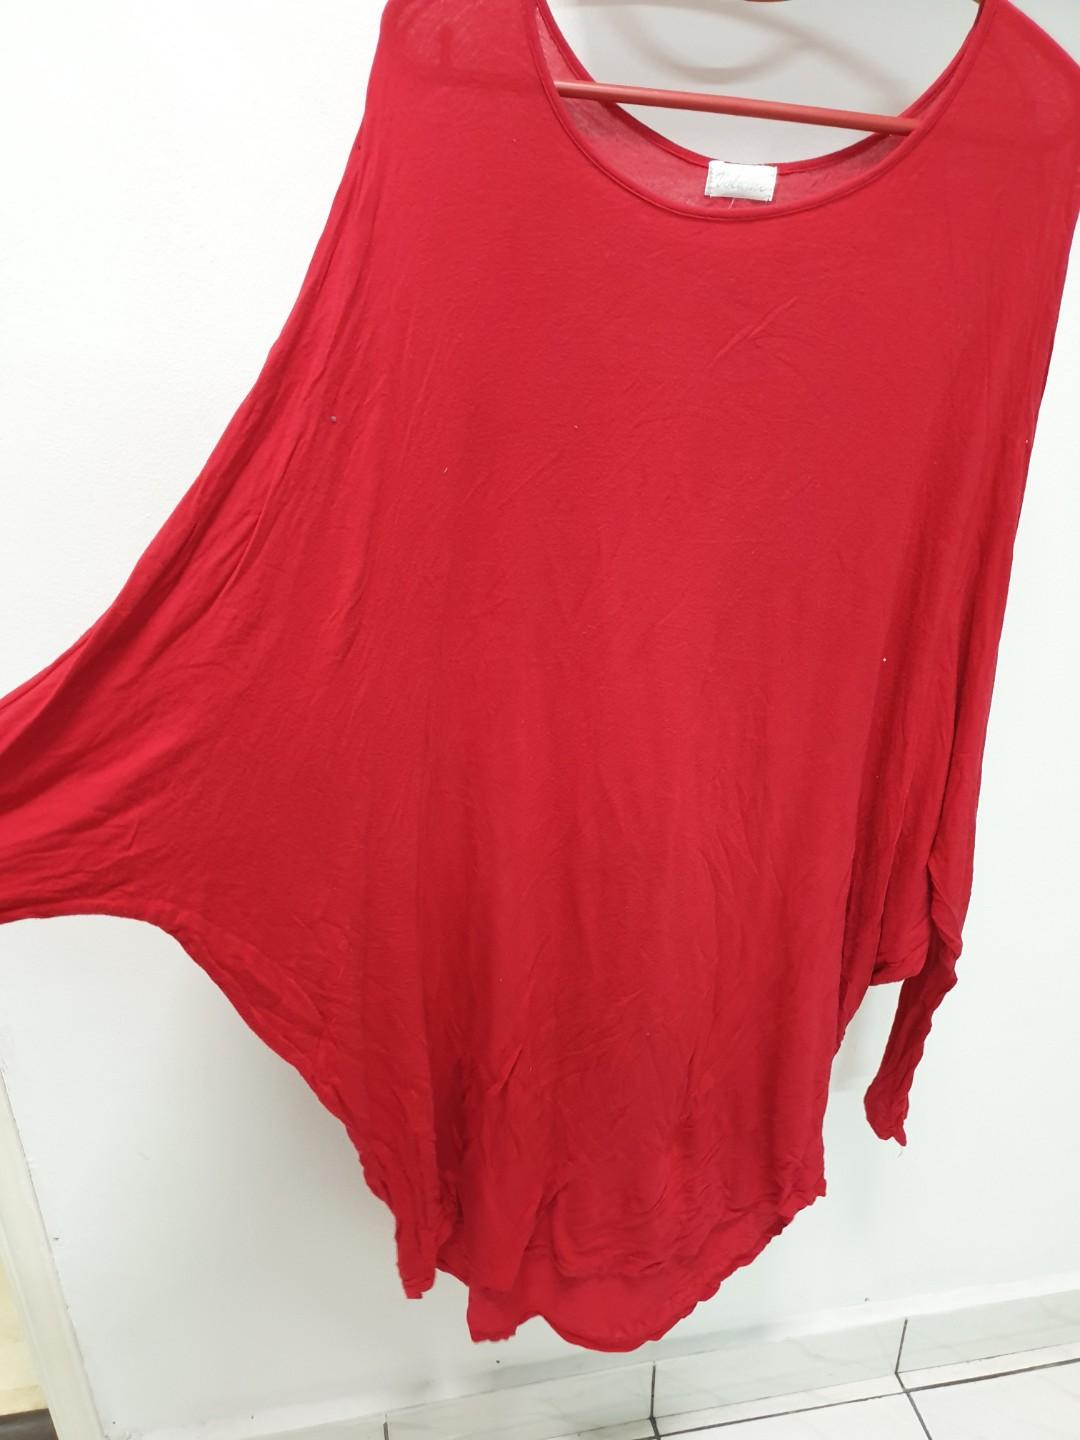 Red batwing top